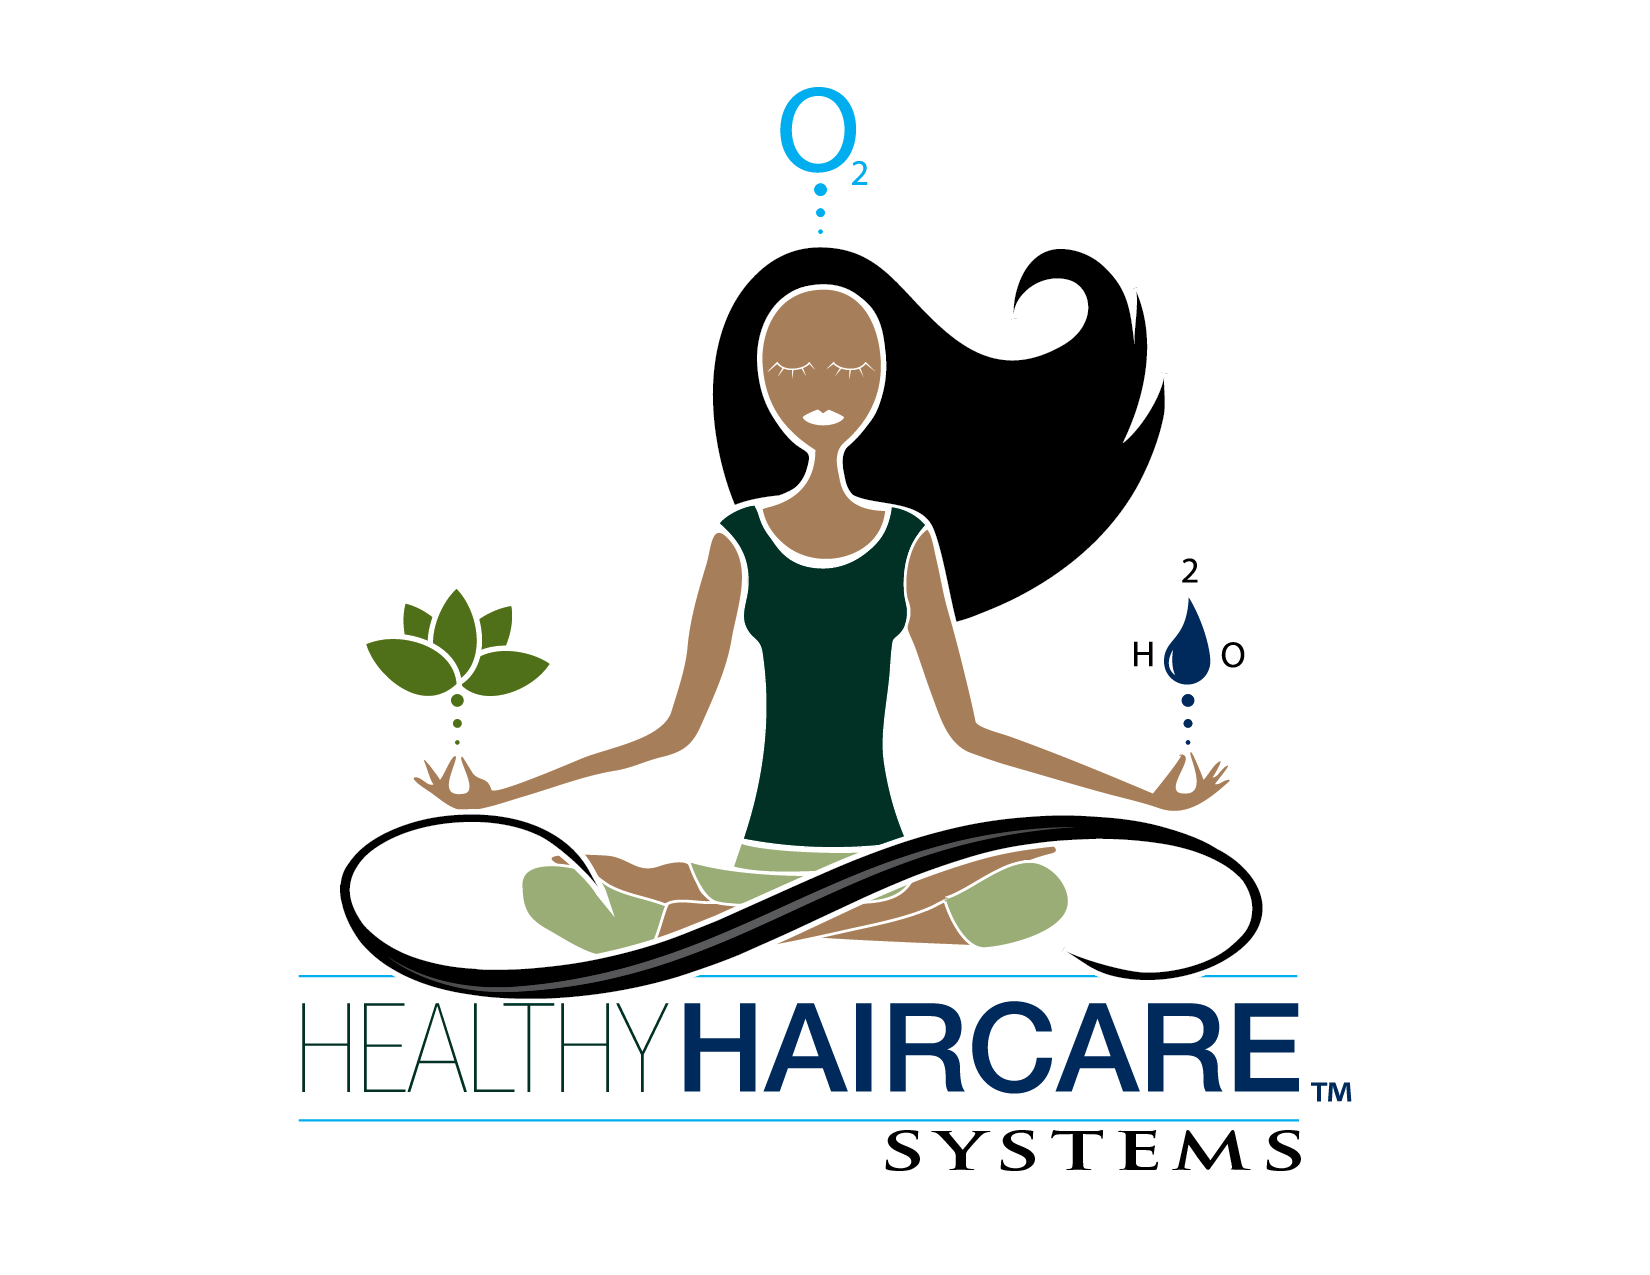 Healthy Haircare Systems